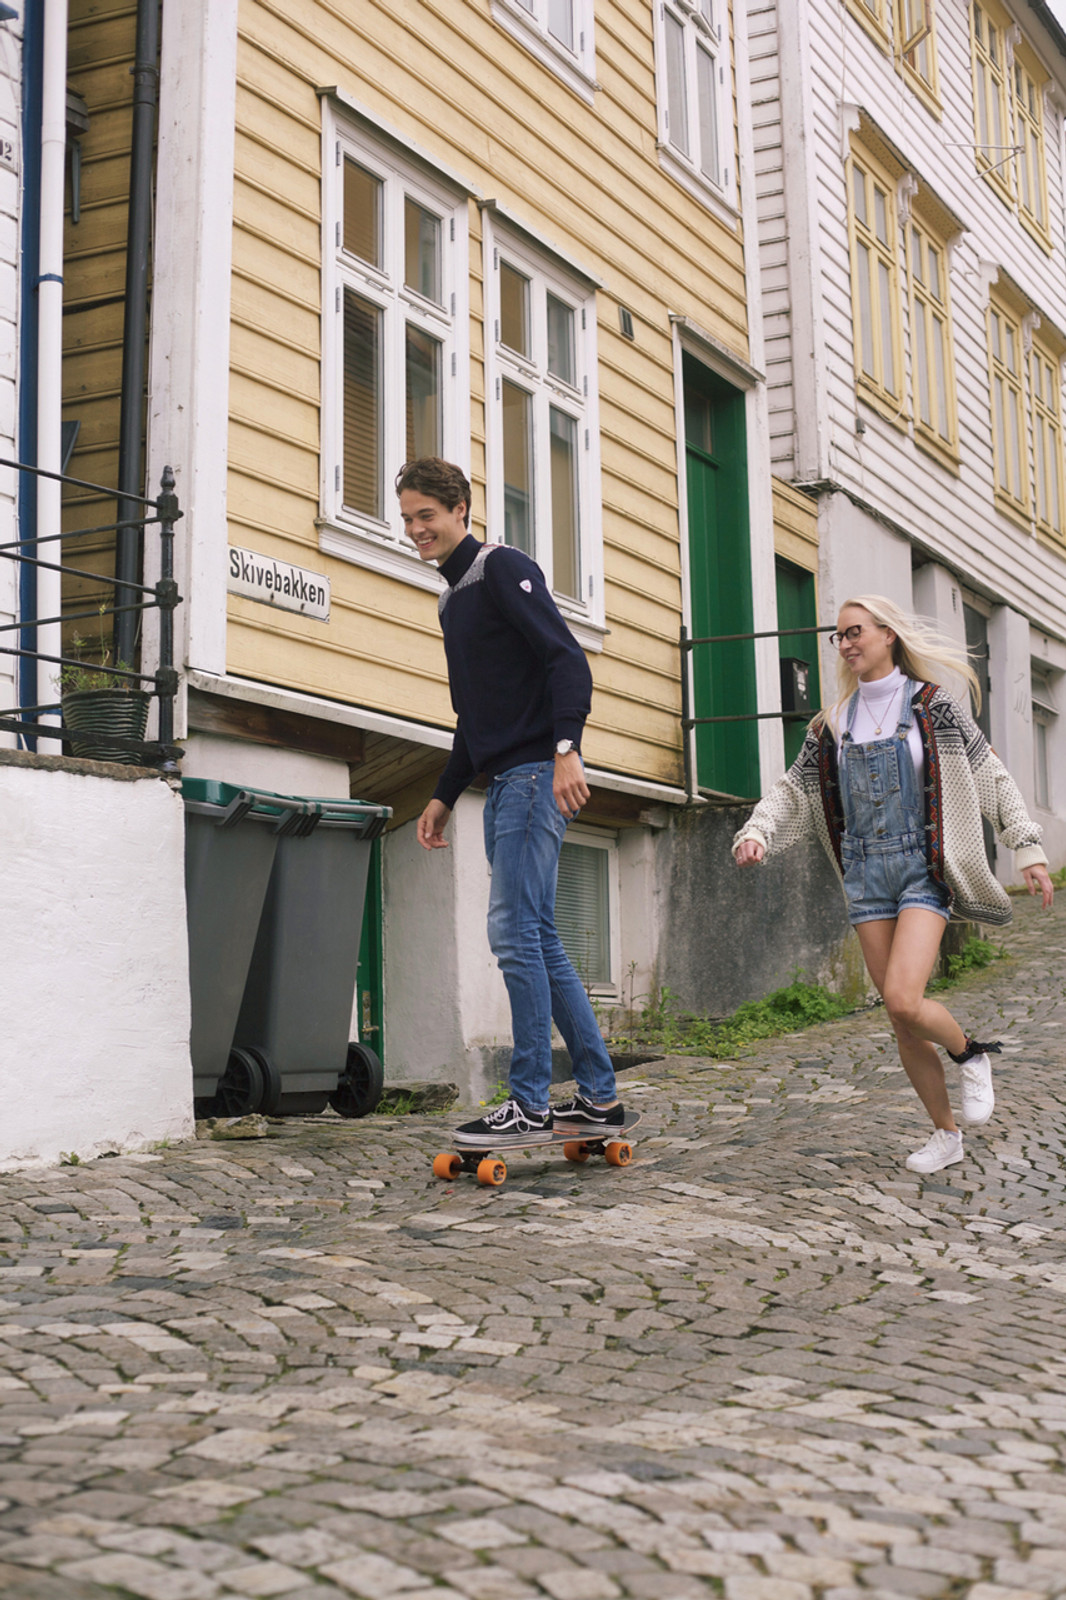 Skating boy and running girl wearing Dale of Norway mens Fiemme Sweater in Dark Charcoal/Grau Vig/Raspberry/Off White, 93421-T, and new unisex Setesdal cardigan in Off White/Black, 83291-A